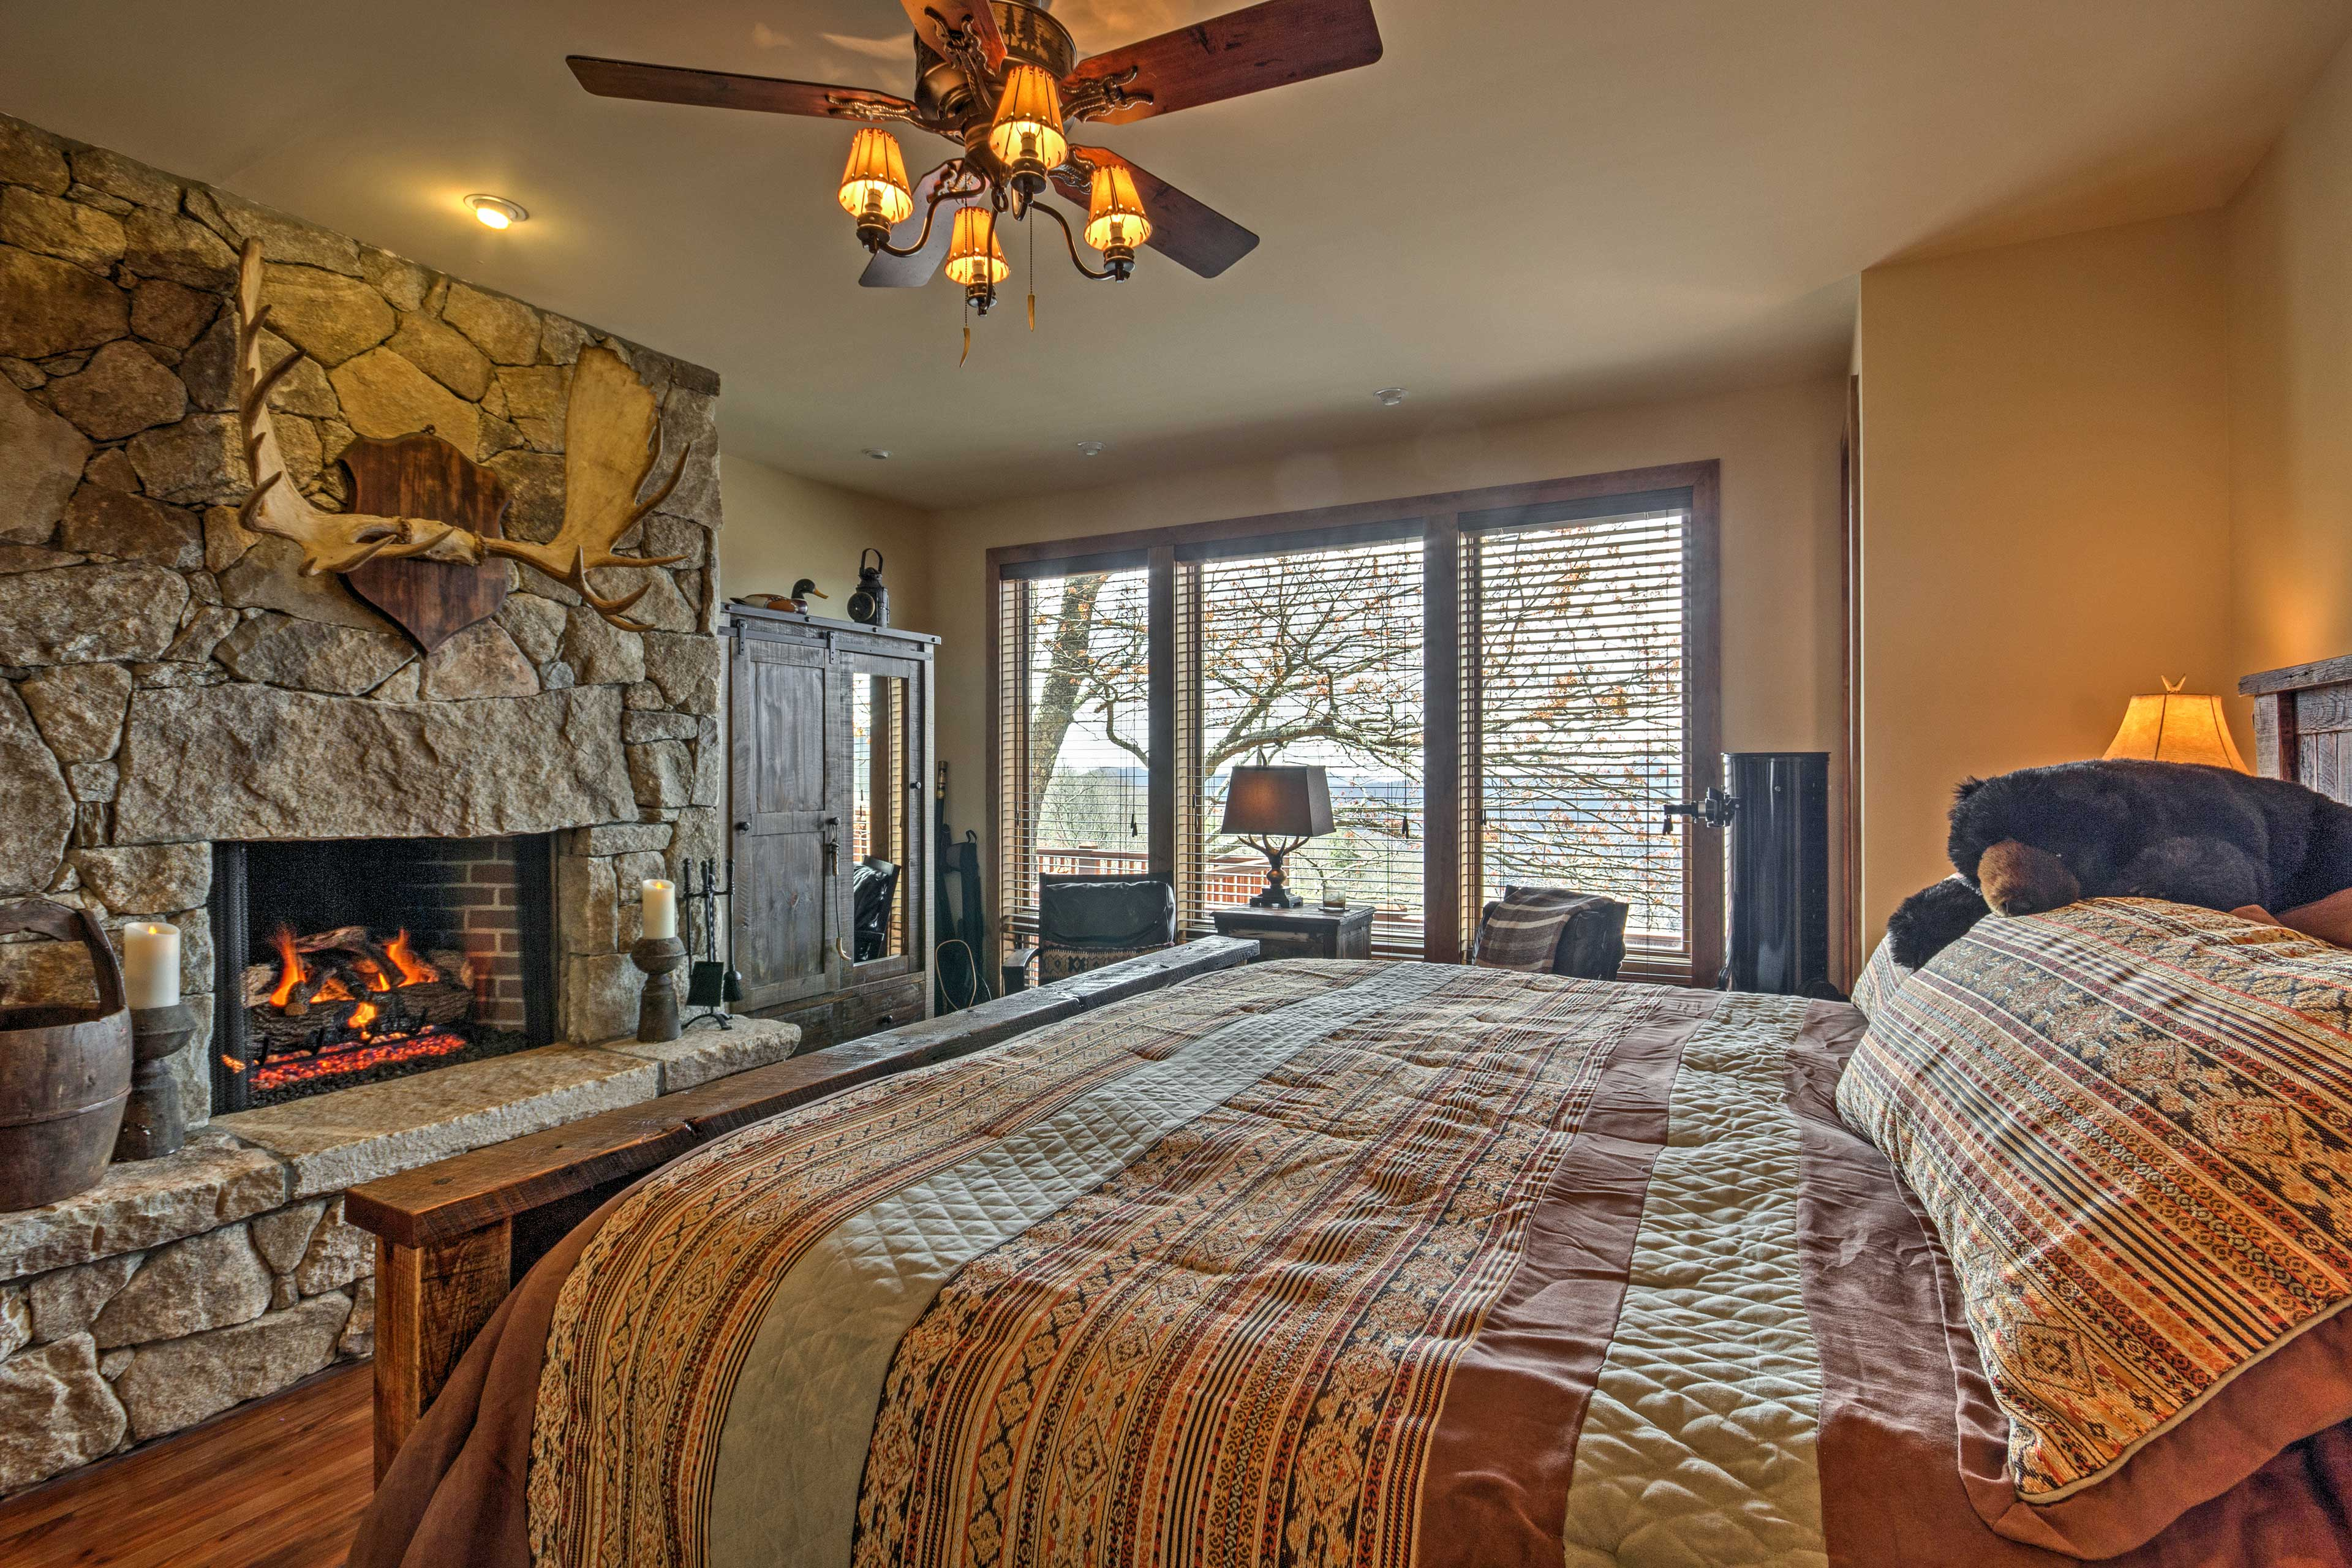 The master bedroom is complete with a king-sized bed and stone fireplace.